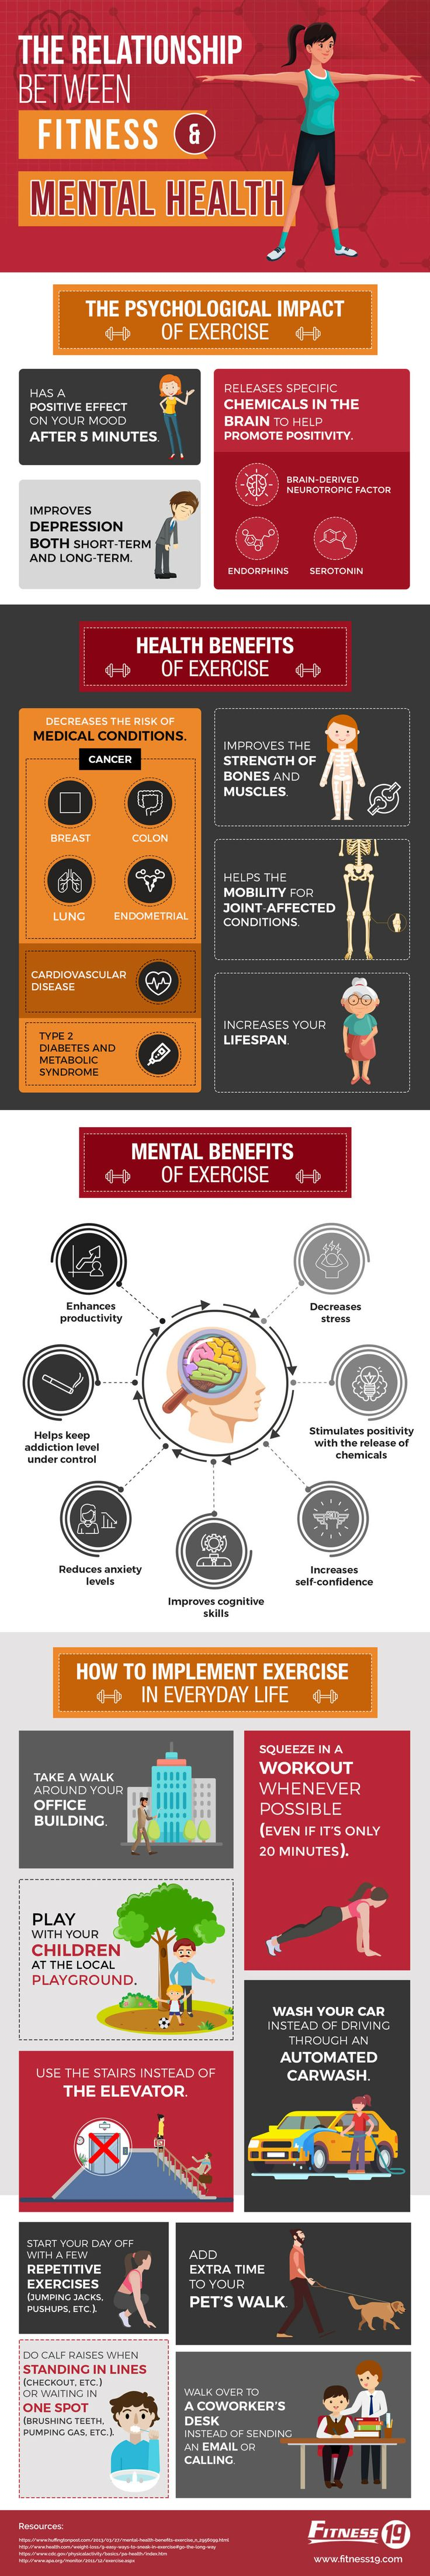 The Relationship Between Fitness and Mental Health